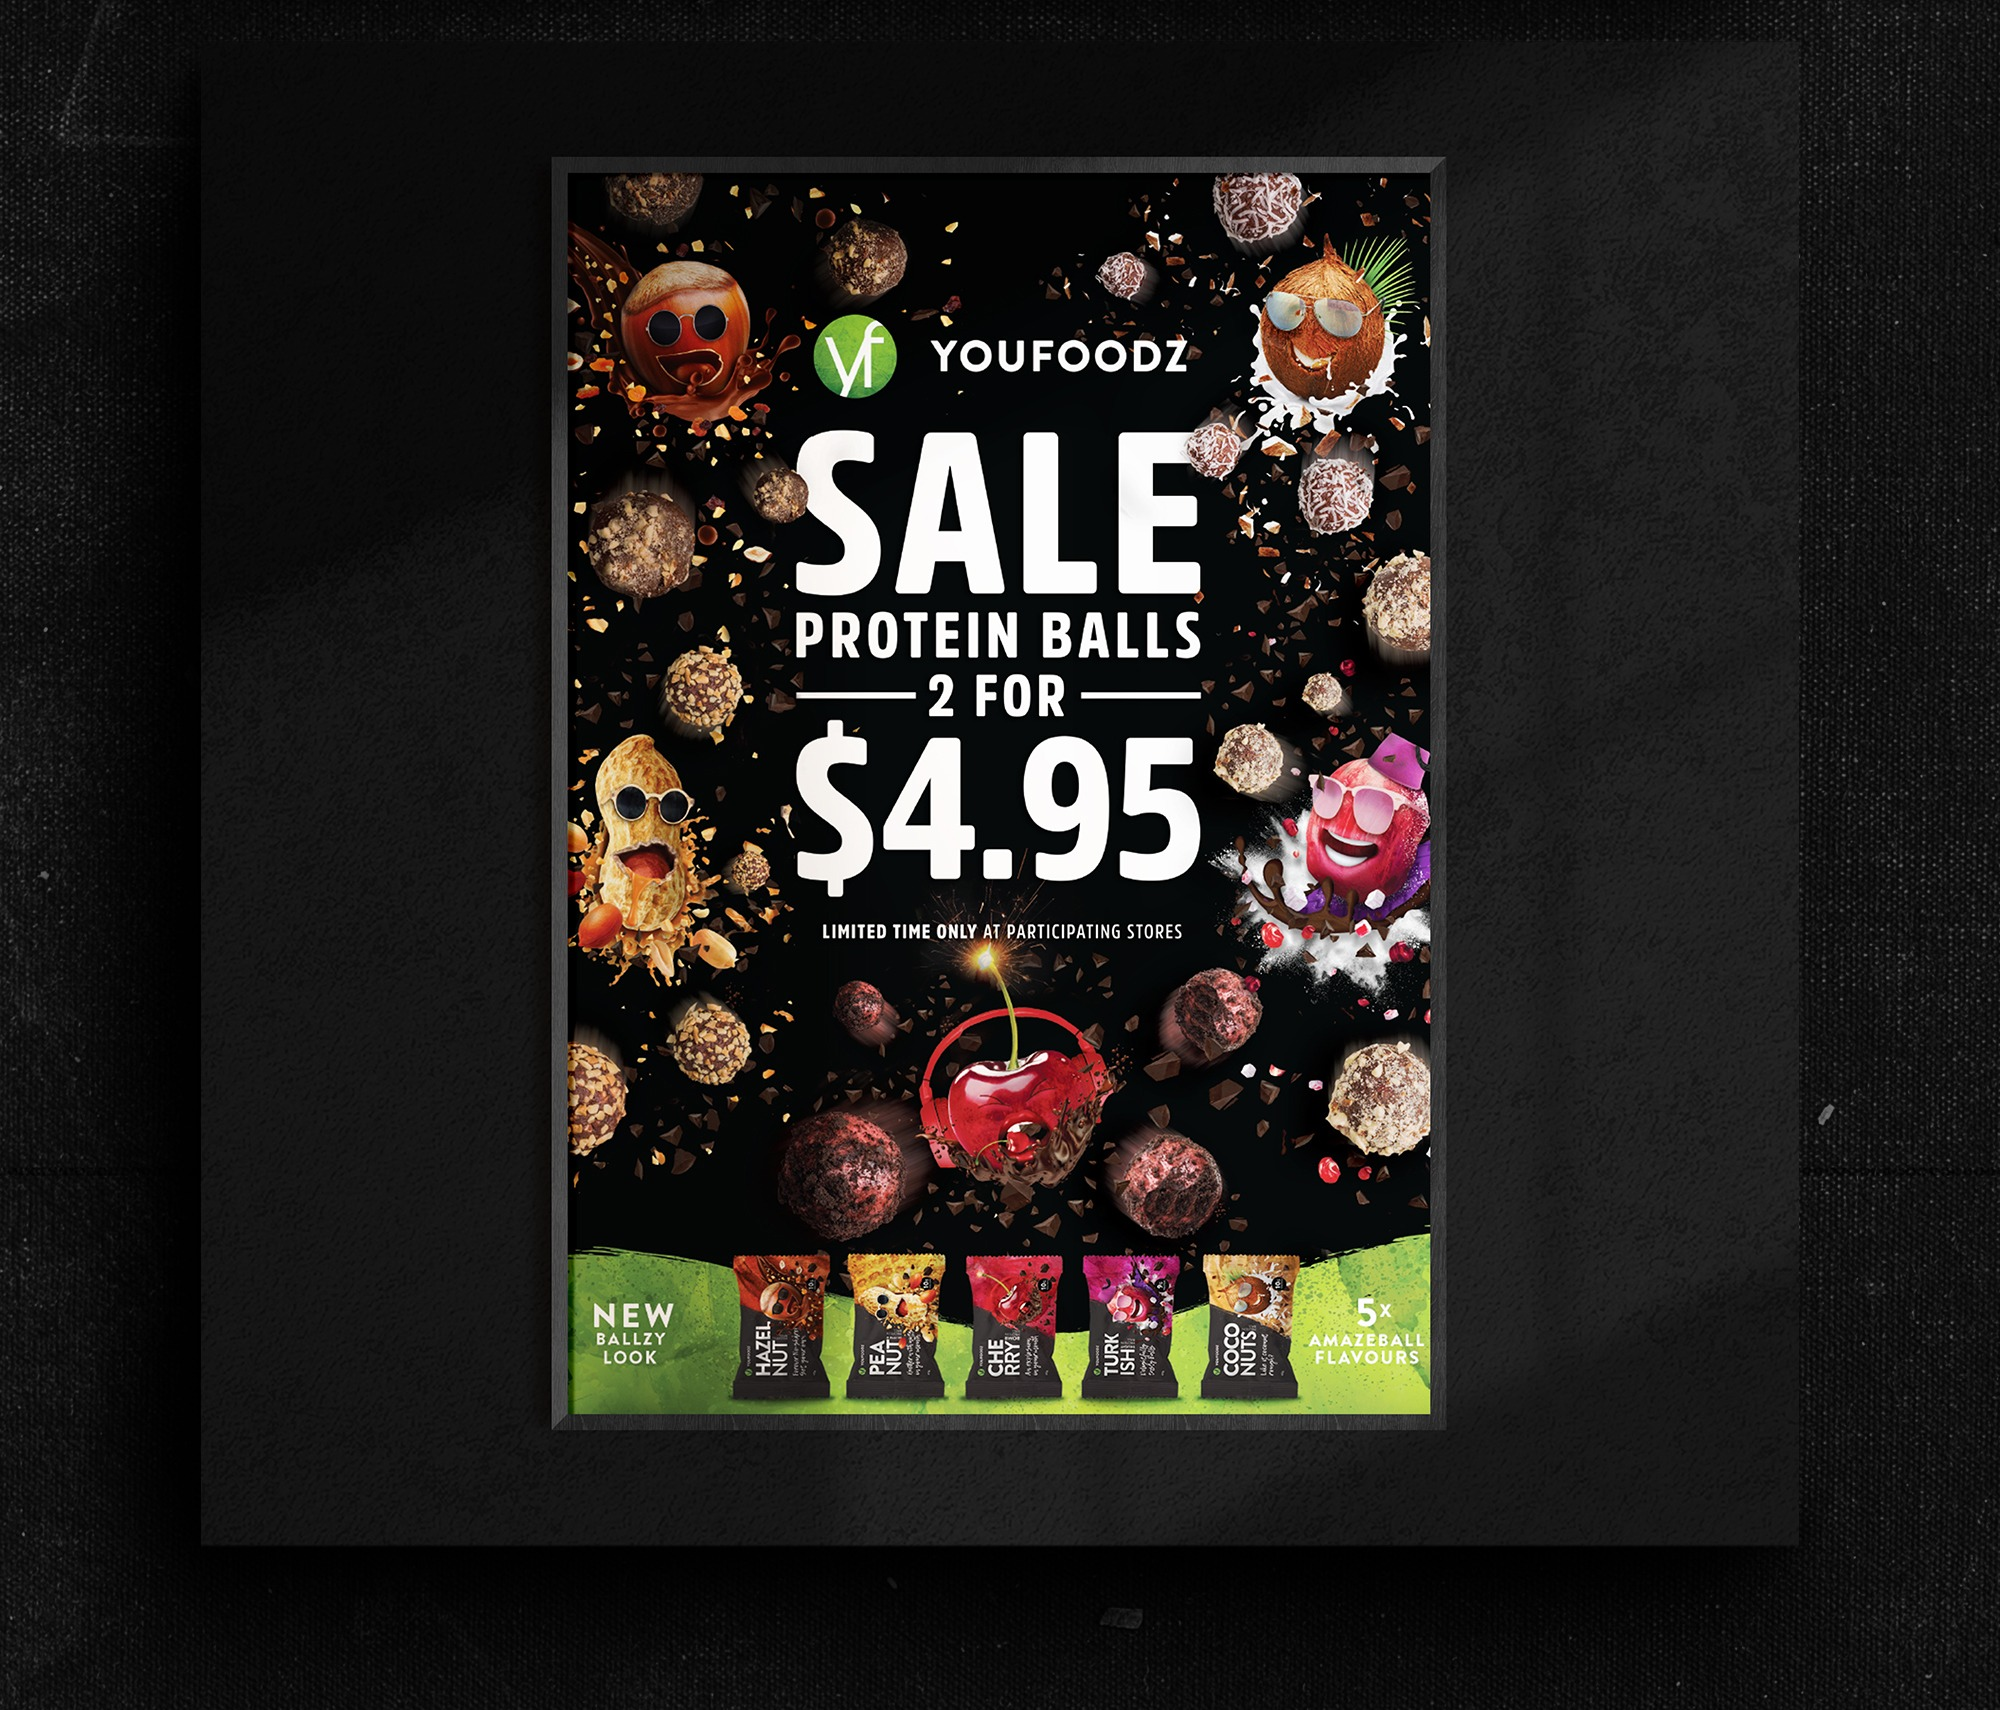 New packaging design for Youfoodz protein balls Poster